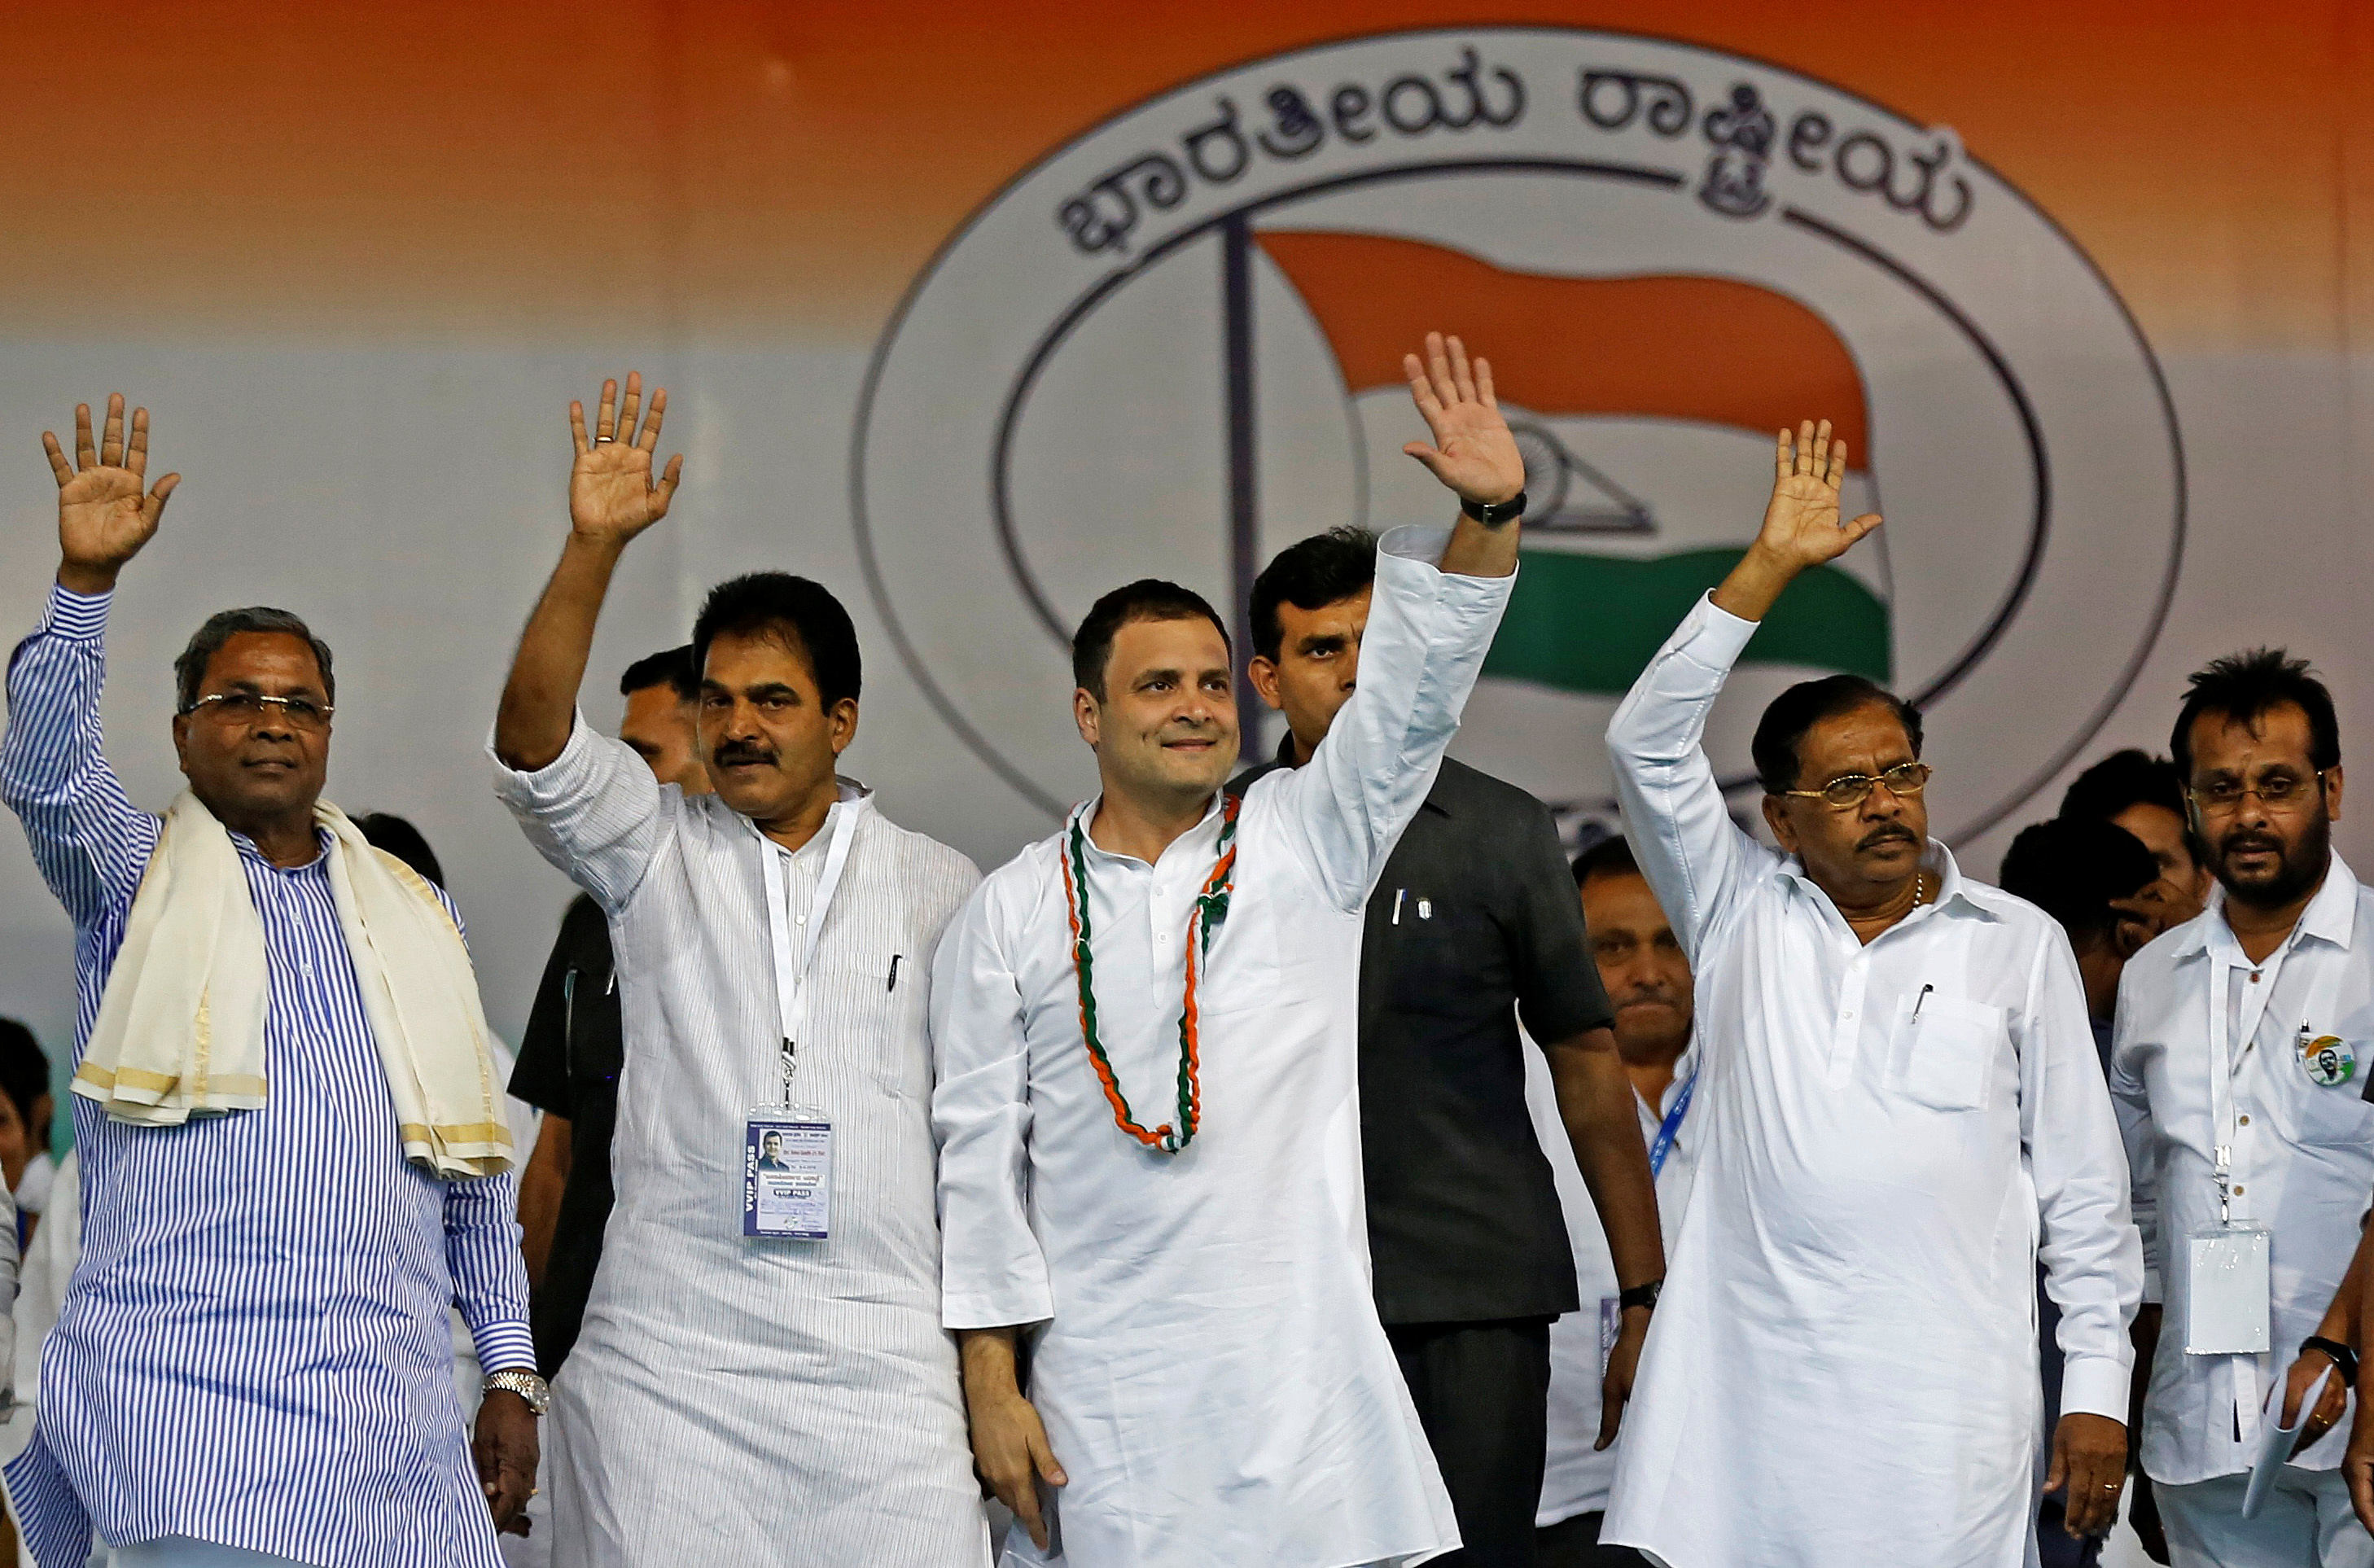 Rahul Gandhi, center, president of India's main opposition Congress party, waves to the crowd before addressing an election campaign rally ahead of the Karnataka state assembly elections, in Bengaluru, India, April 8, 2018.